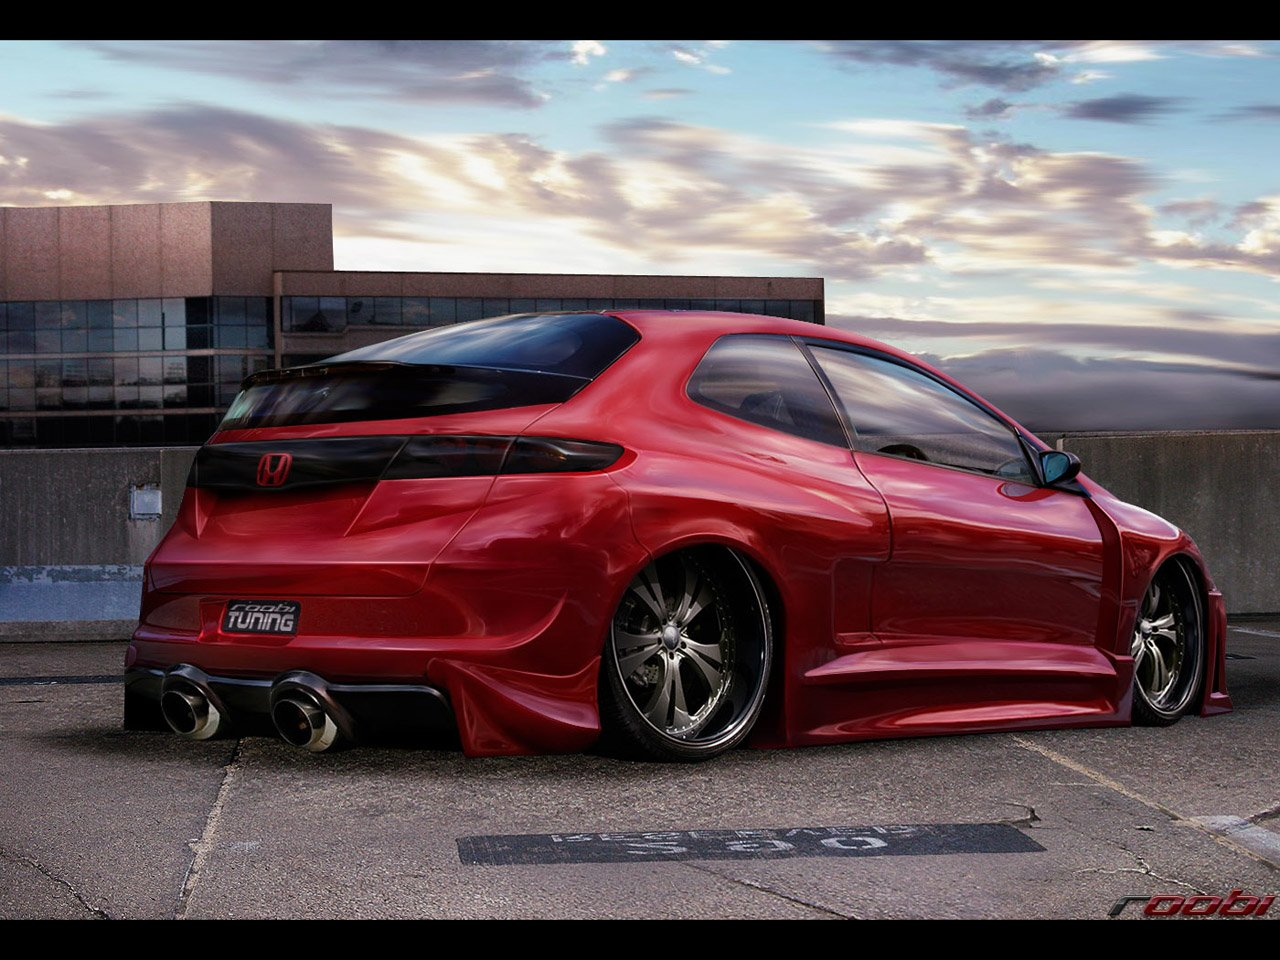 New Auto Cars Civic Honda On This Month